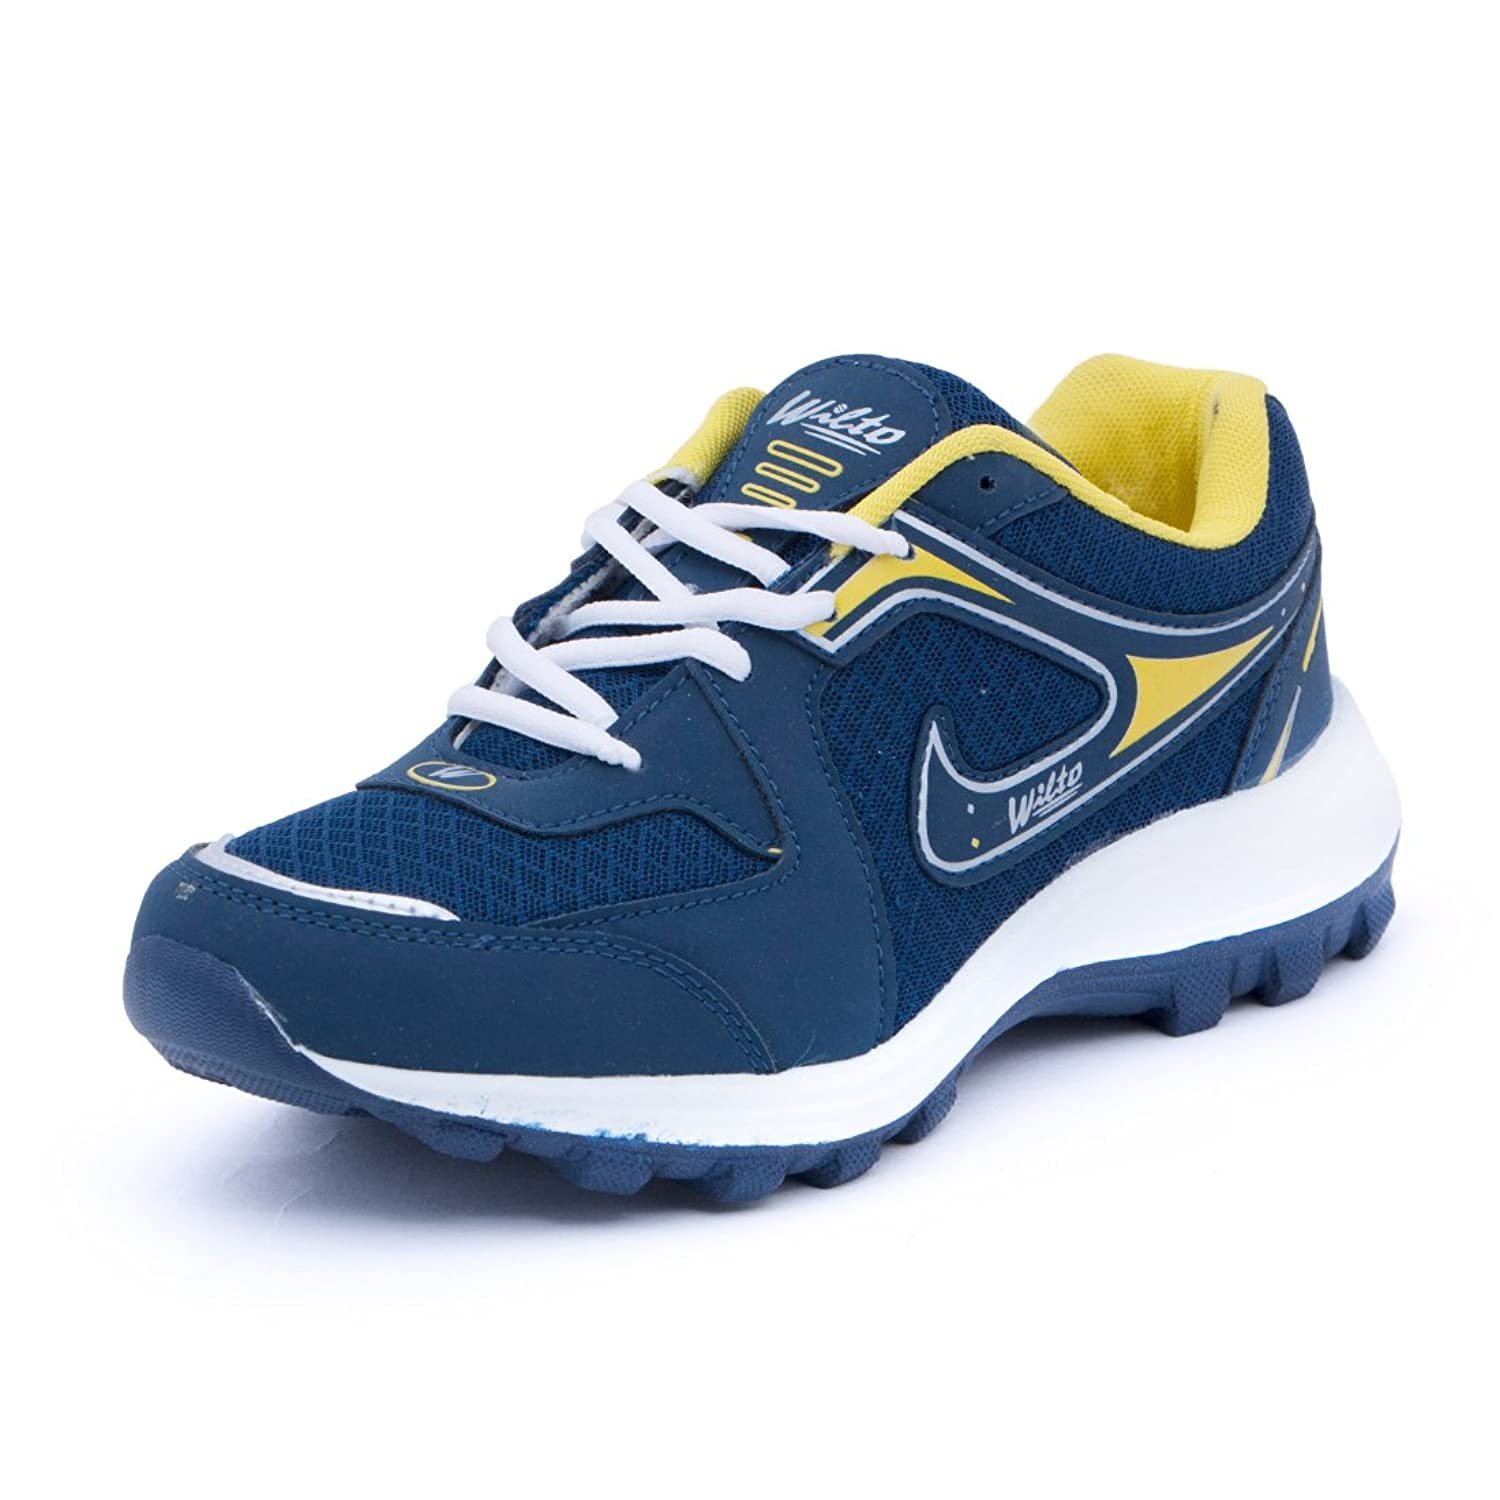 Best Sport Shoes Brand For Walking